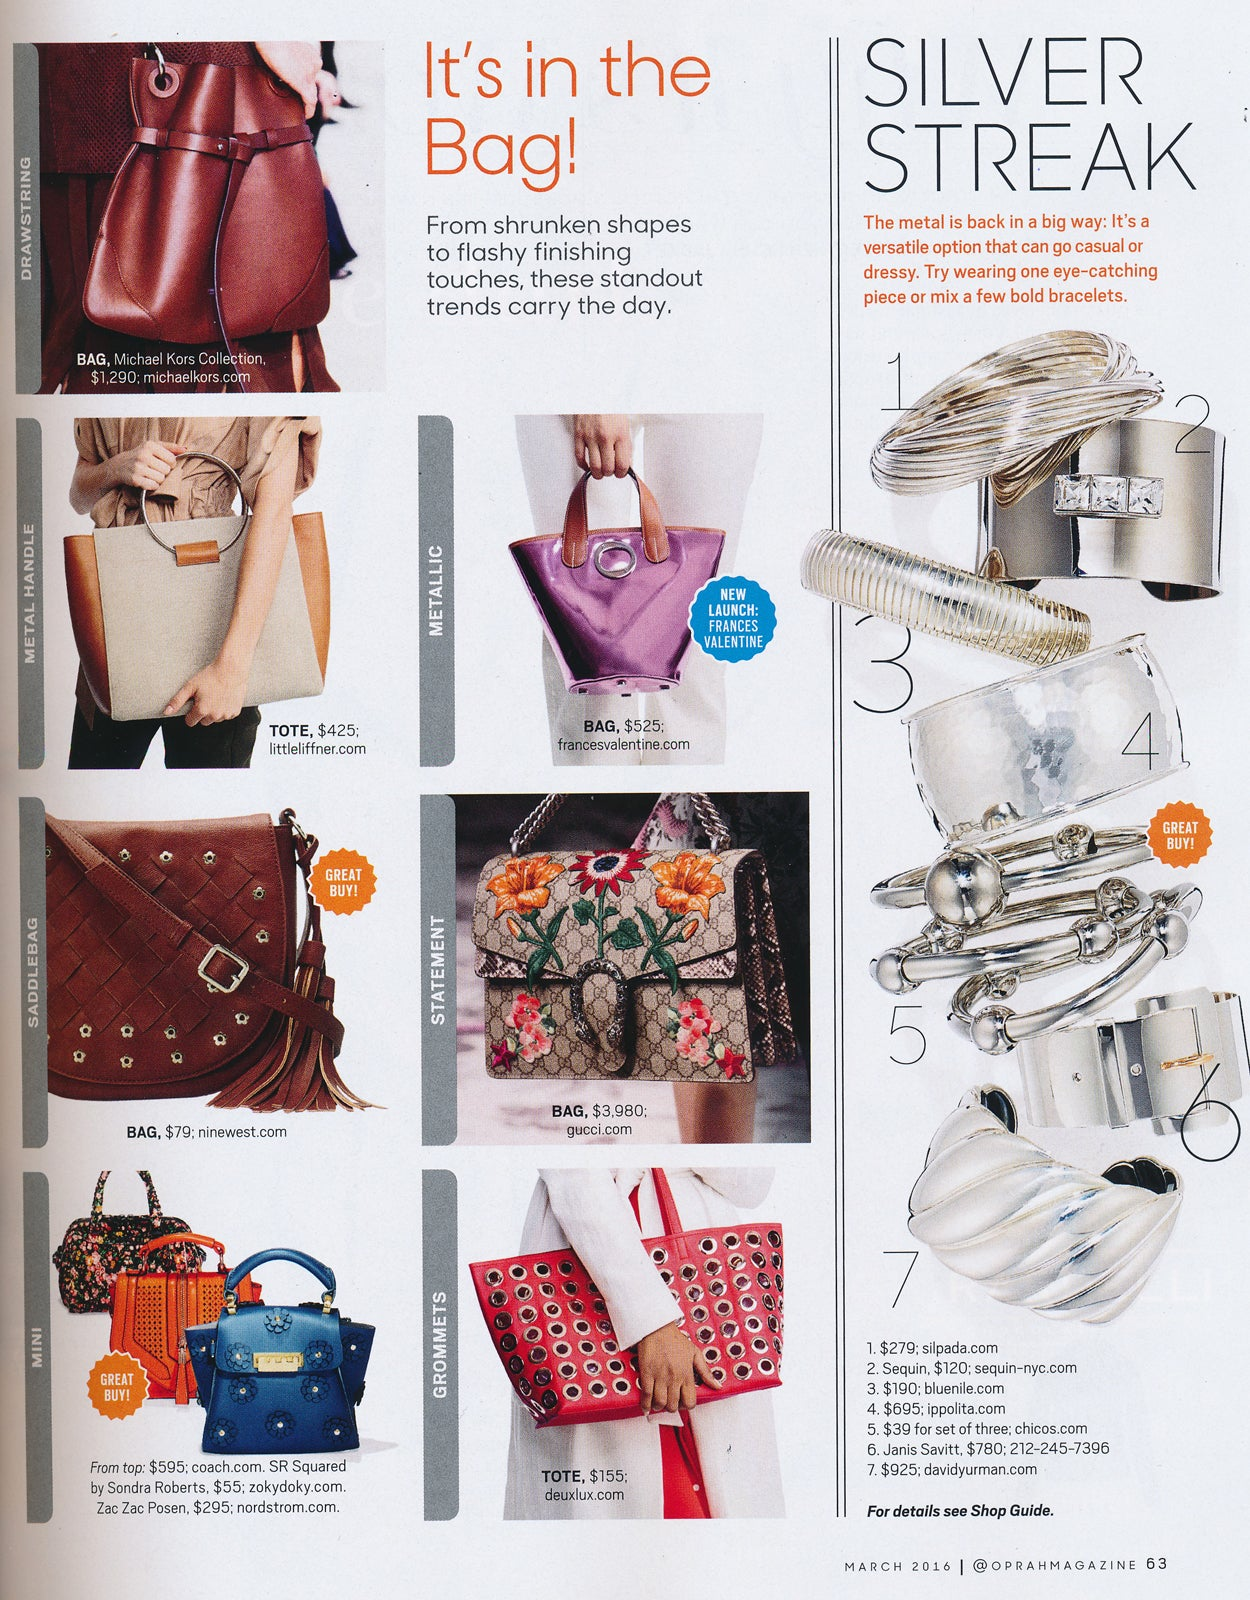 O, The Oprah Magazine - March 2016, featuring Sequin's Carre Cuff